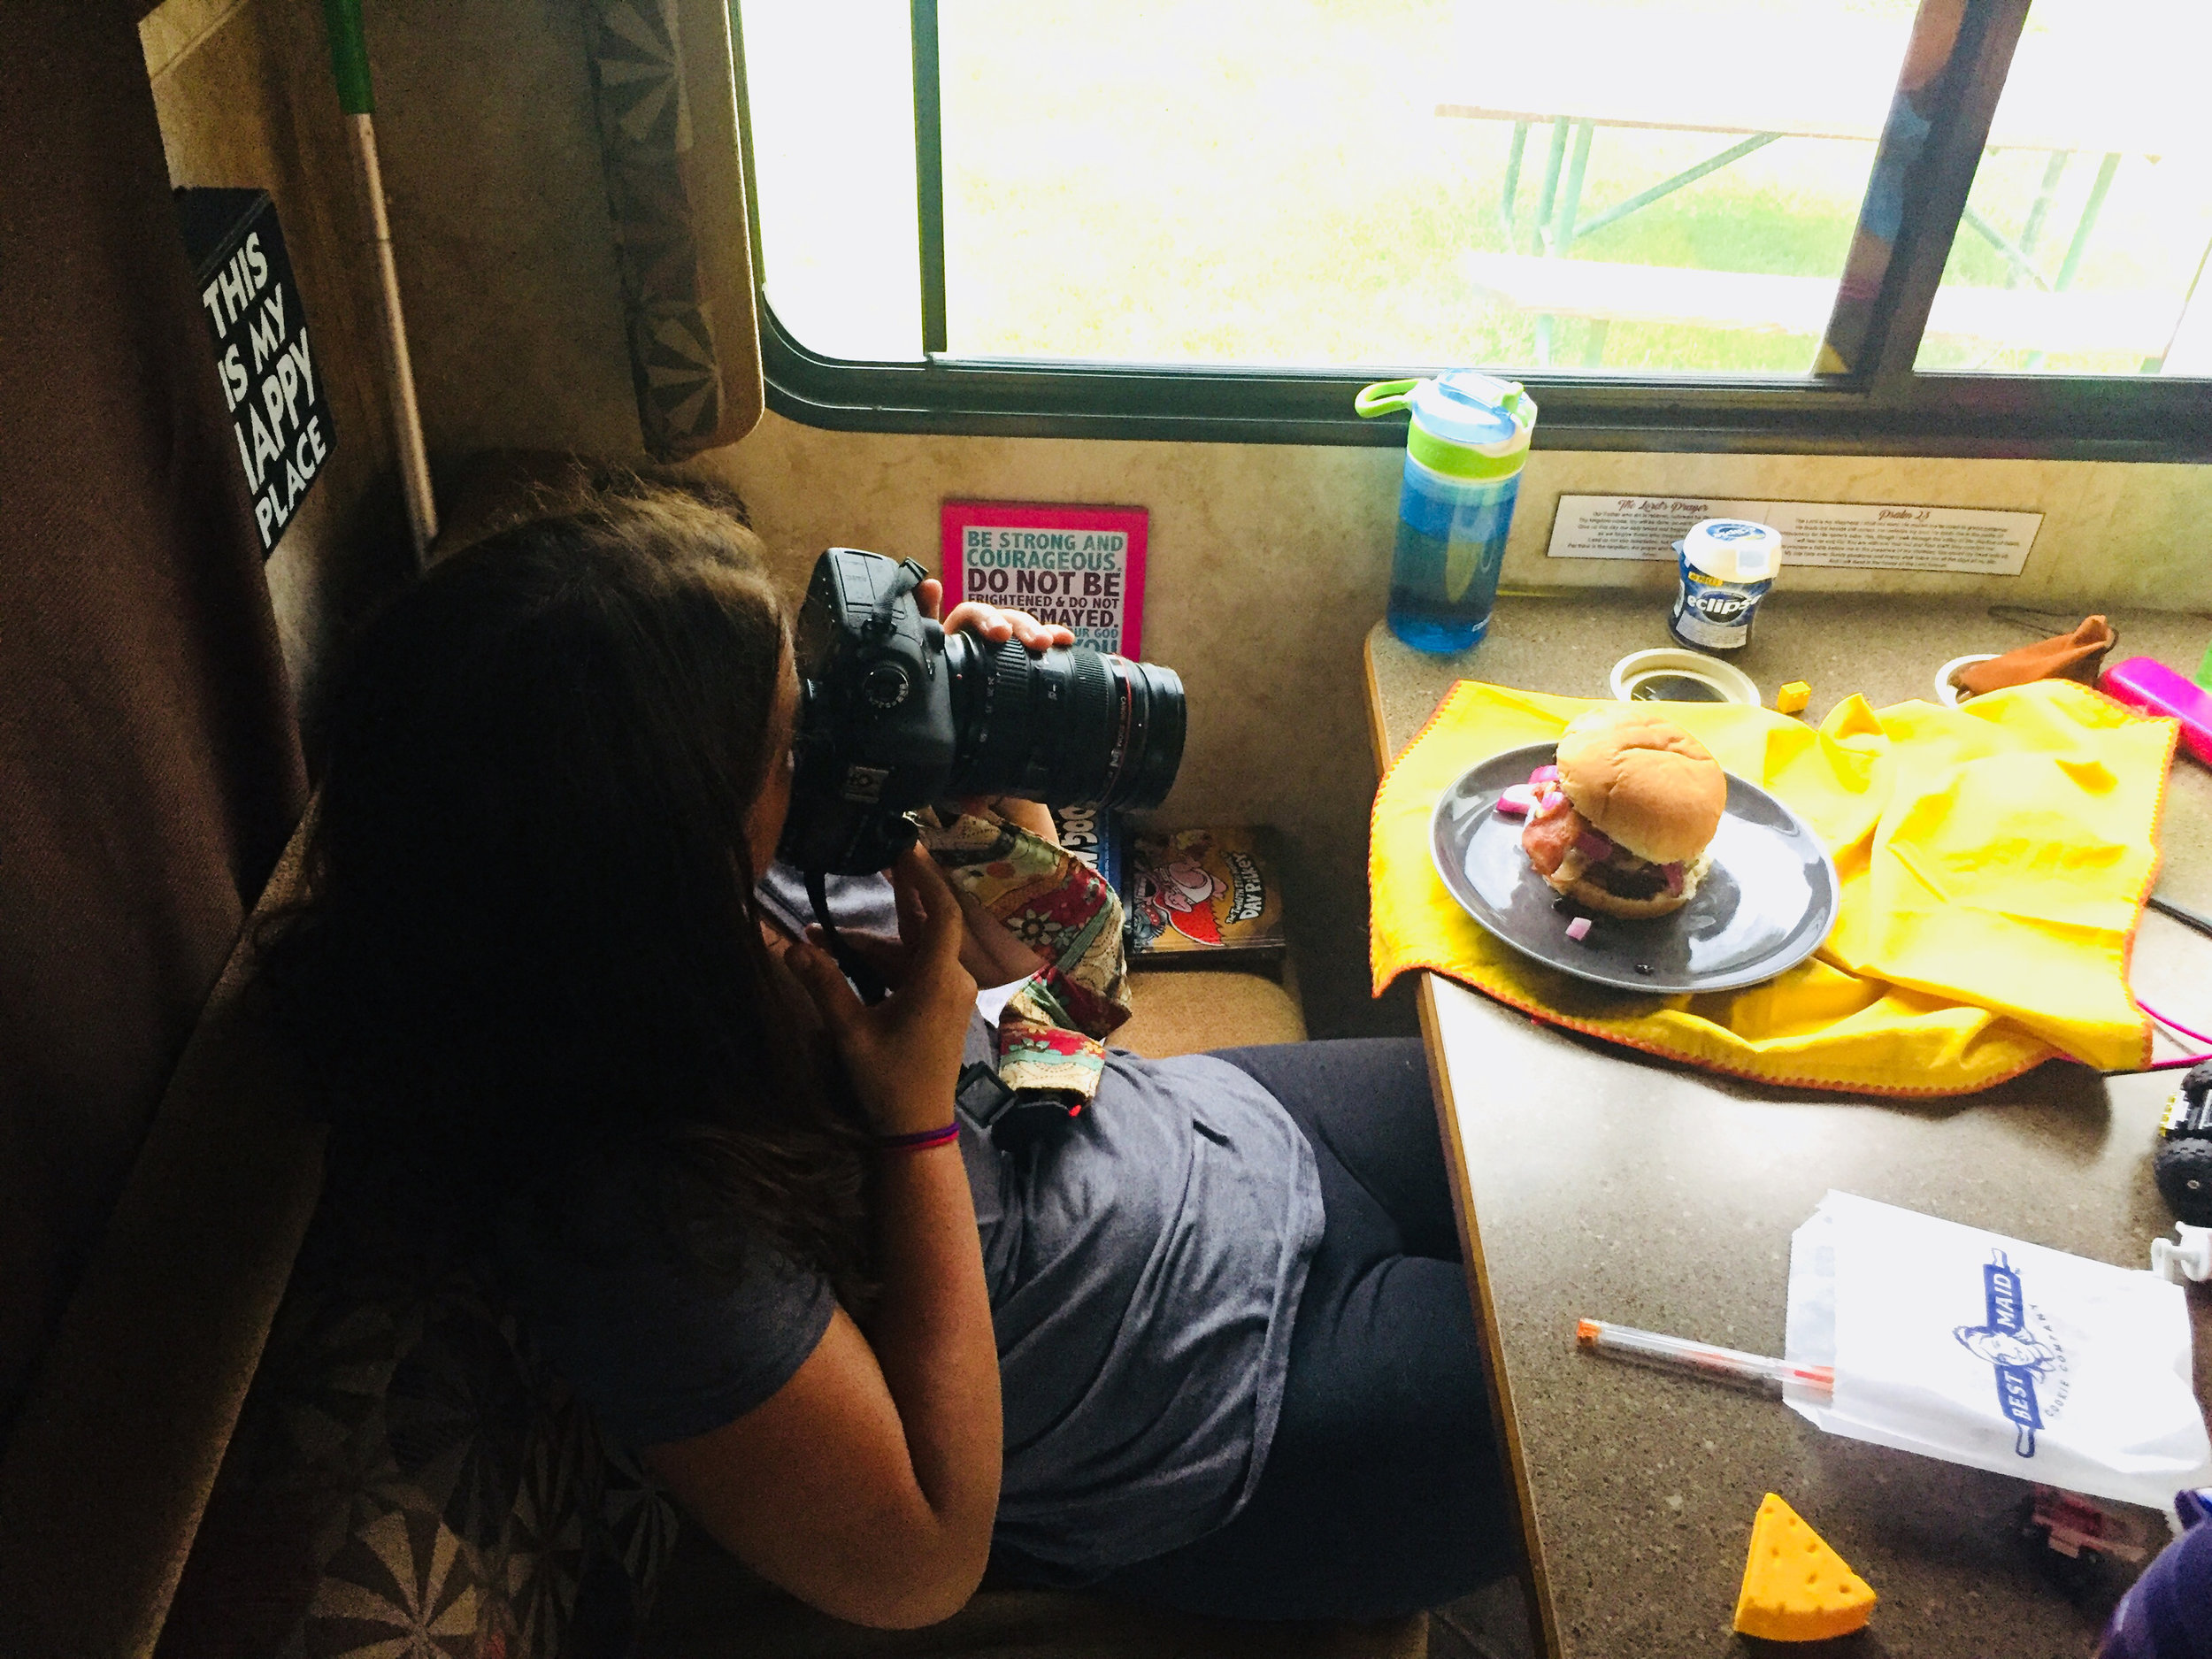 Overhead view of photographer taking a picture of a plated burger with grilled peaches, cherry and brie jam on a plate sitting on a table in an RV.